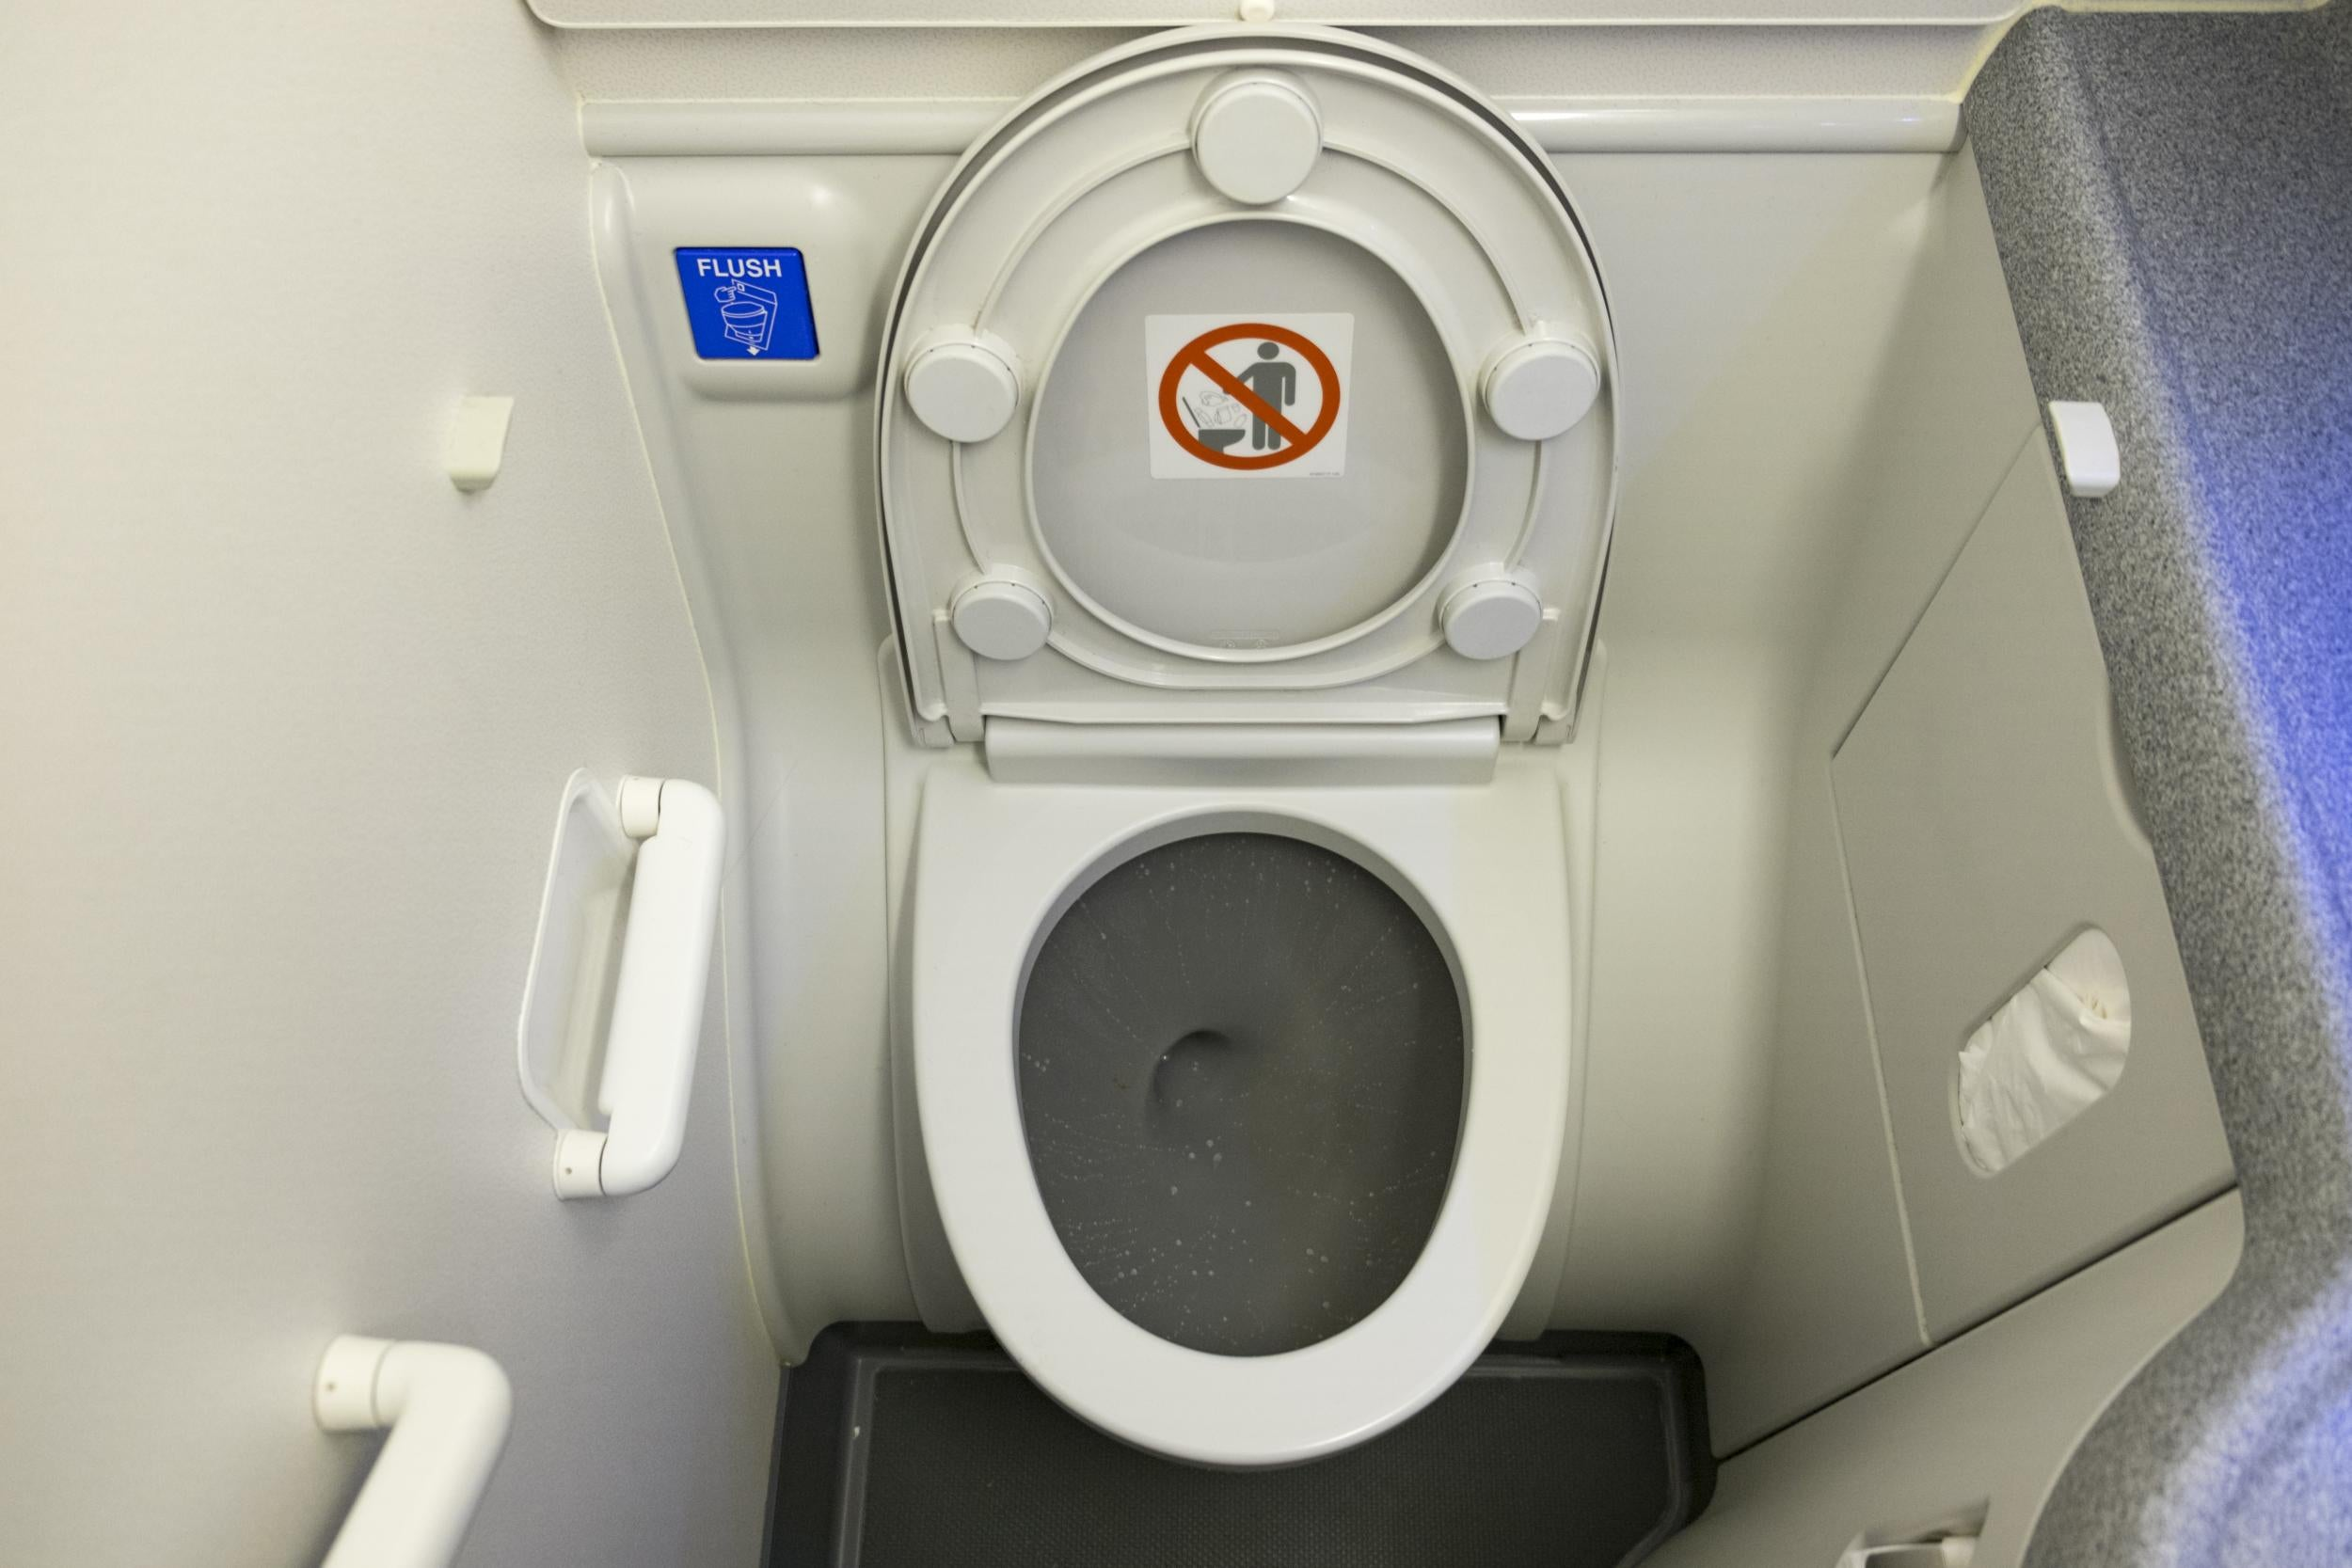 Plane toilets \'shrinking in size to make room for more seats\' | The ...